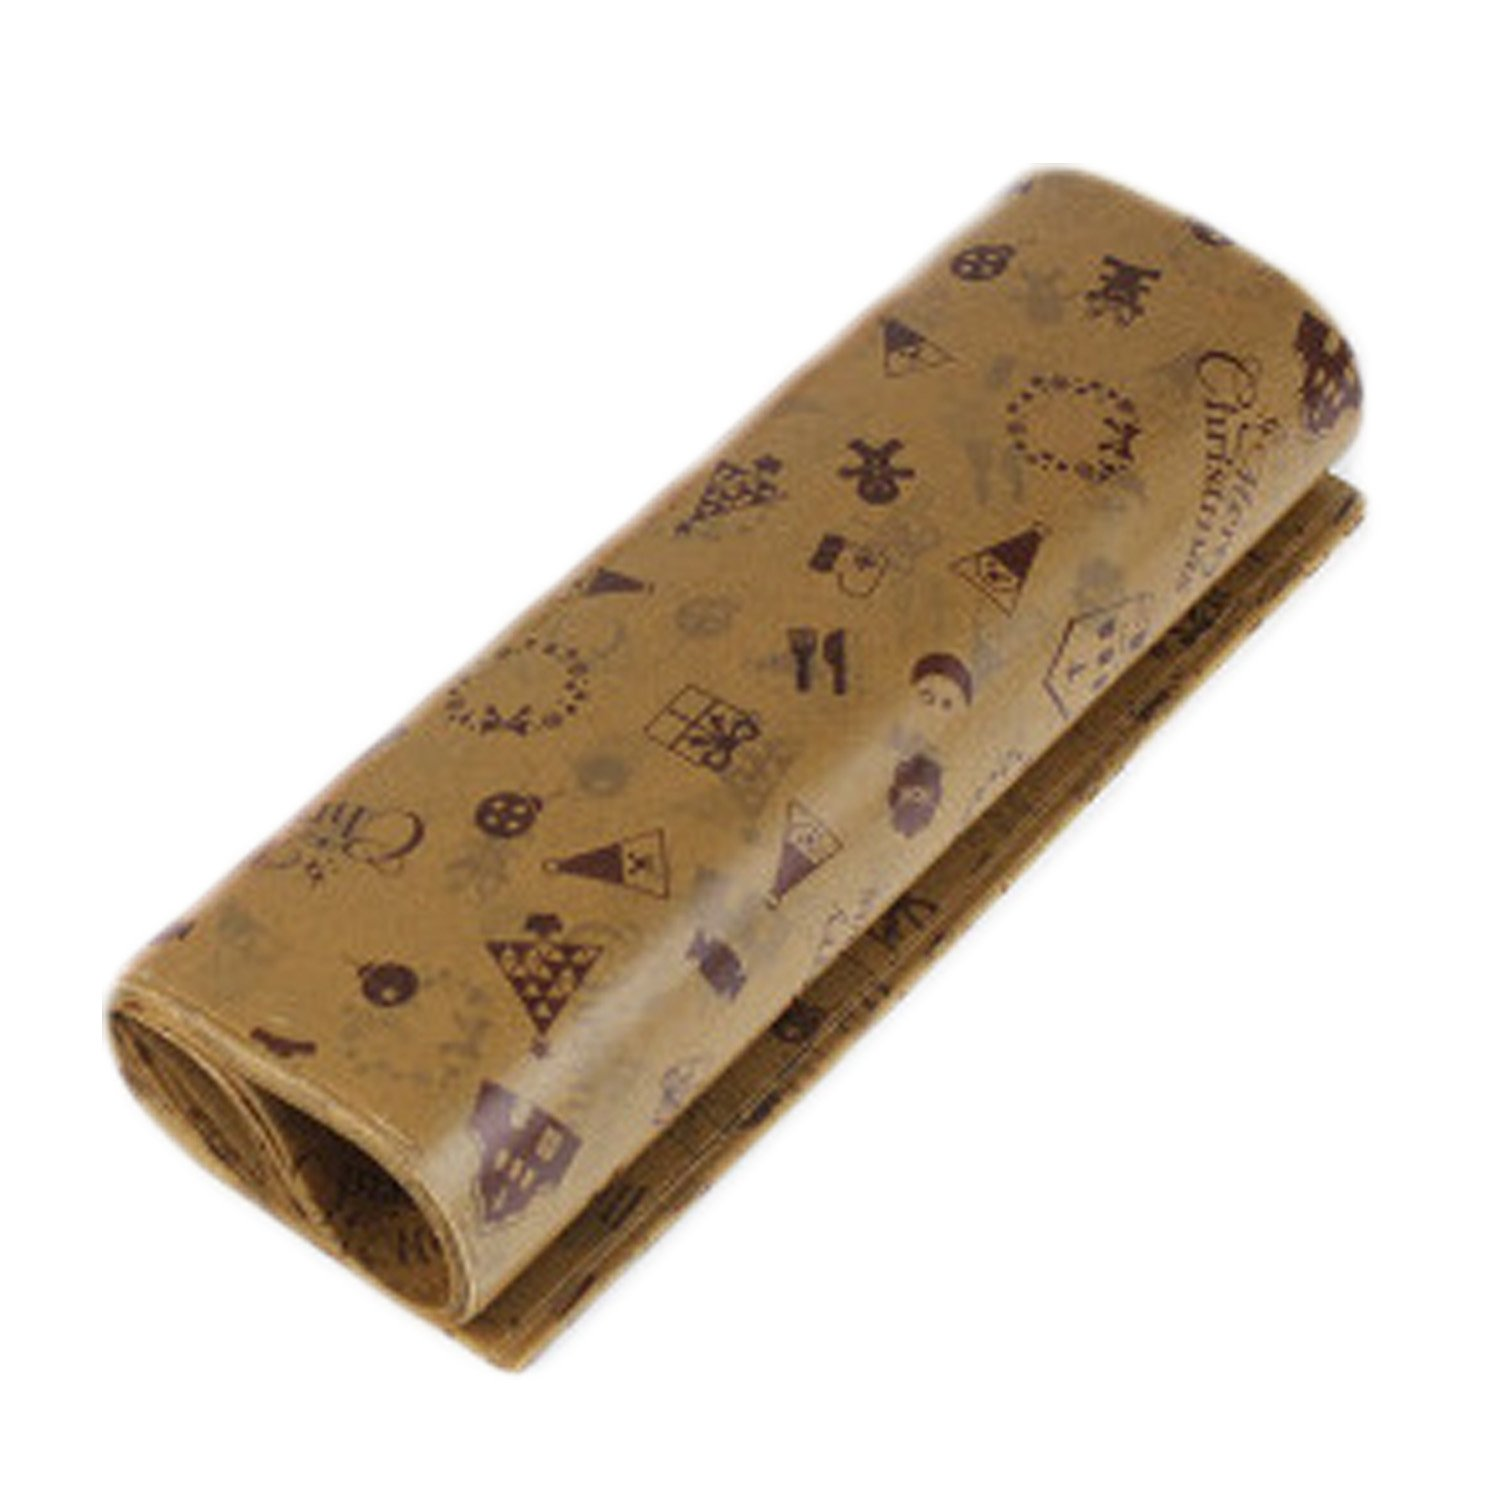 Gosear 50 Sheets Oilpoof Food Wax Paper Candy Wrapping Packaging Paper Sheet For Almond Sugar Chocolate Cookie Macaron Hamburger Cake Bread Chocolate Style